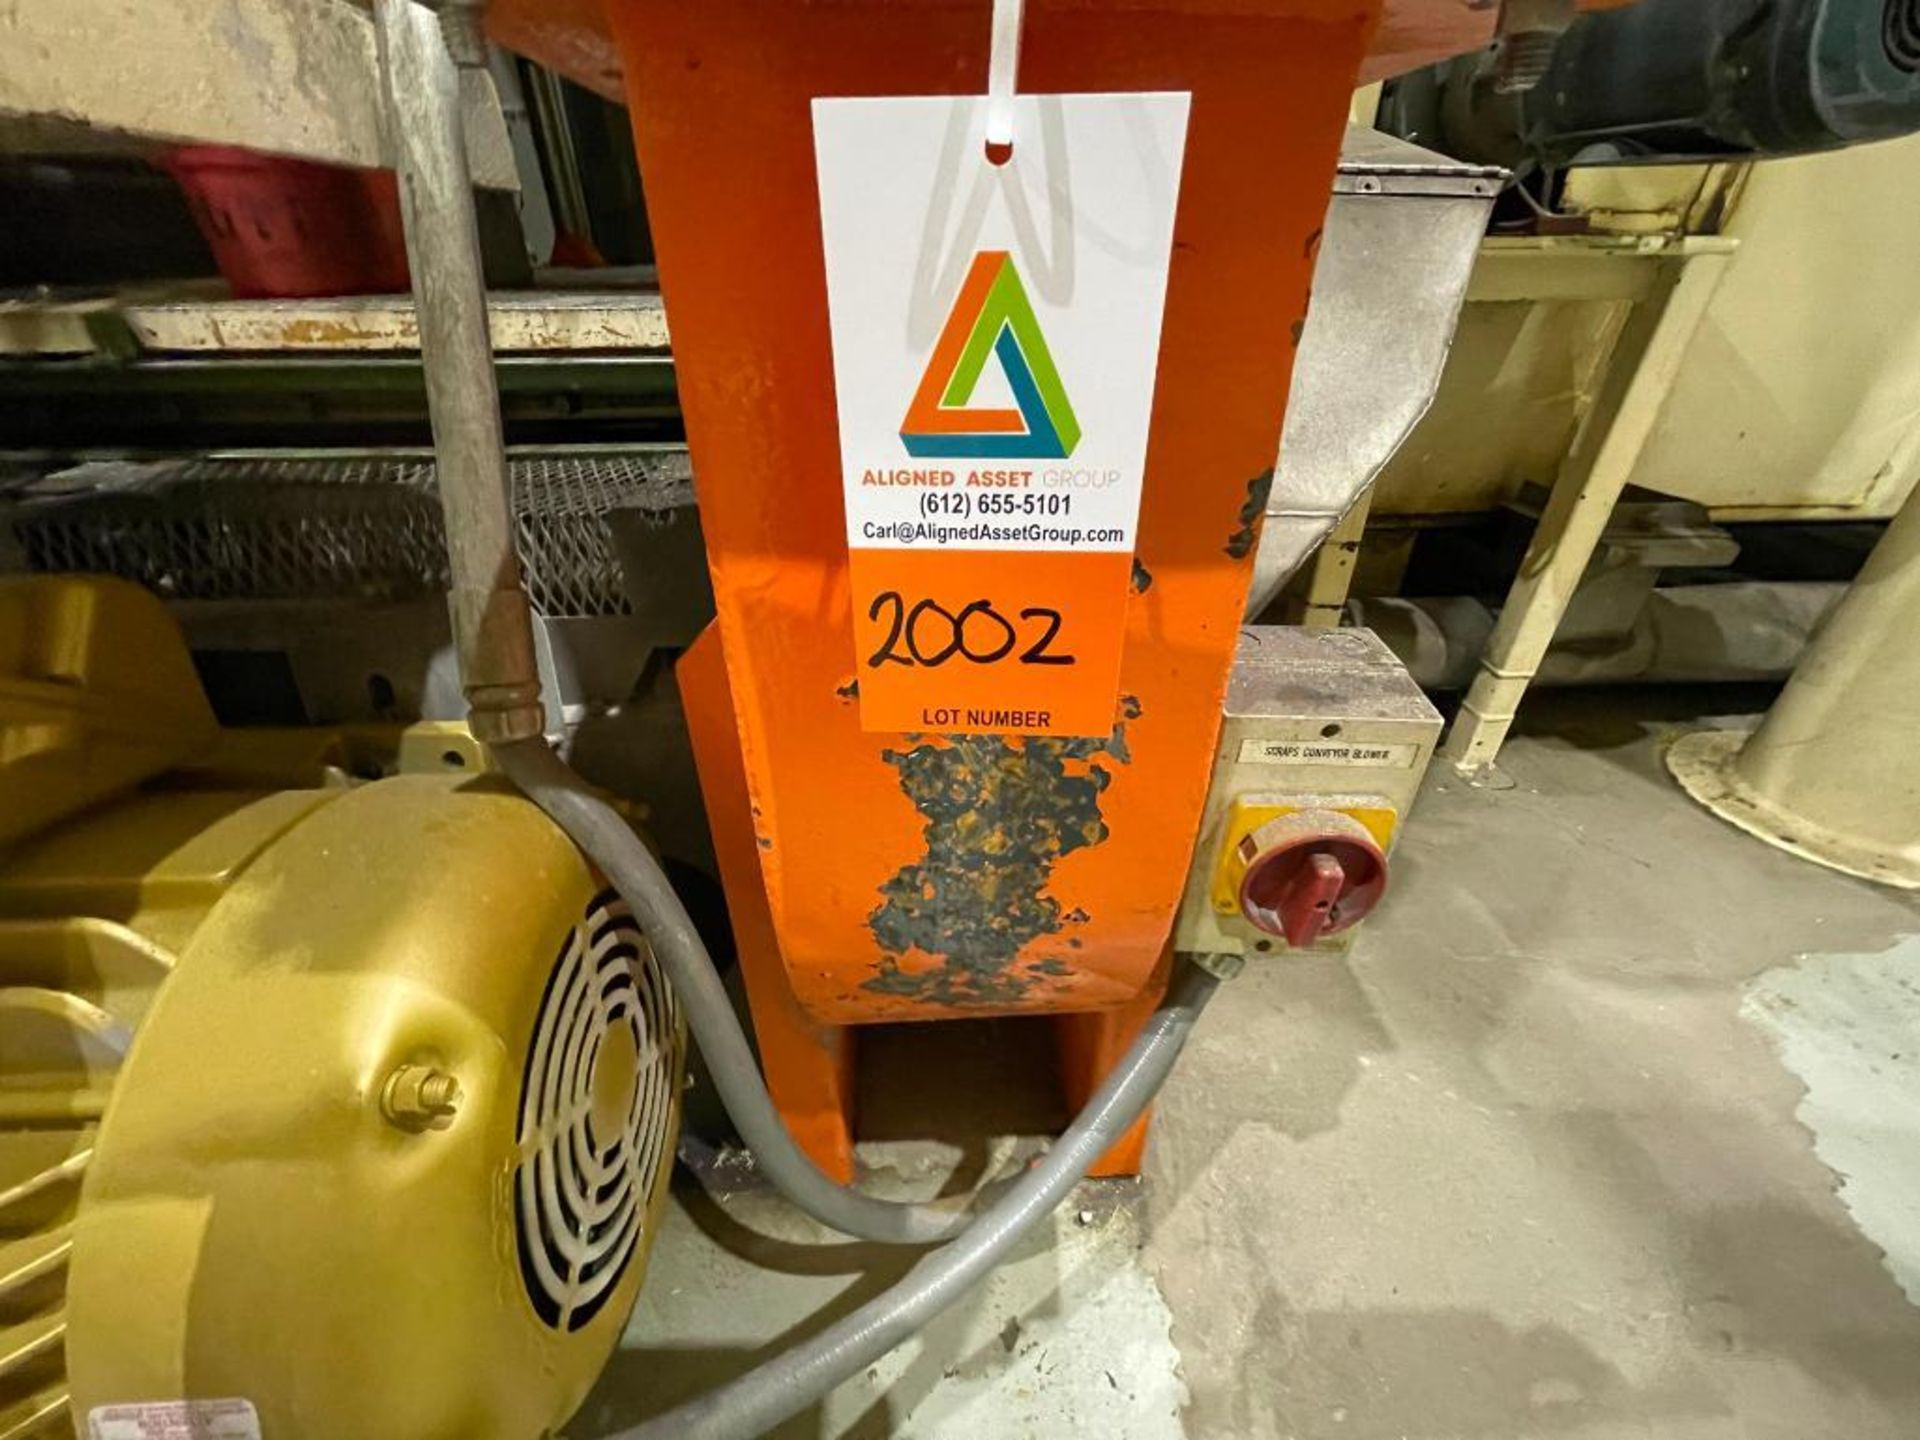 scrap recycle blower - Image 11 of 17